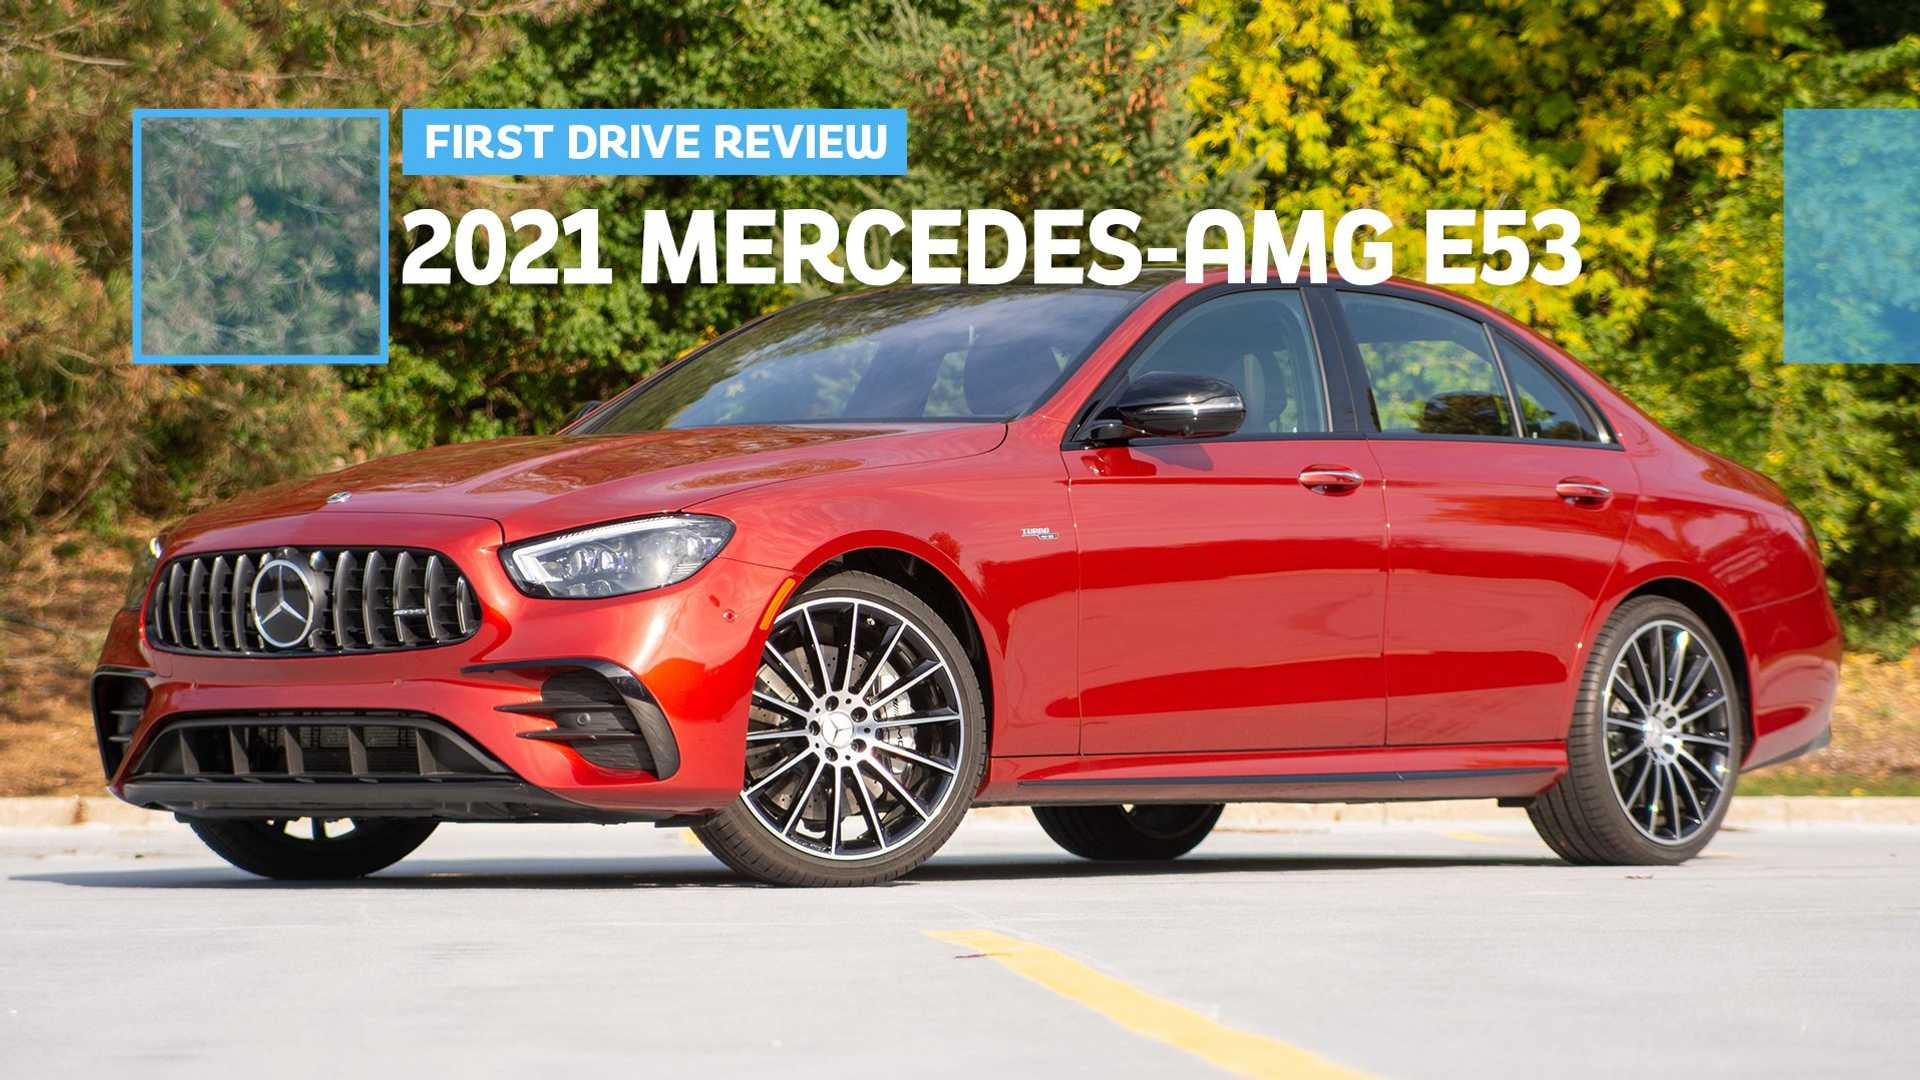 2021 Mercedes-AMG E53 First Drive Review: An Argument For The Middle Child